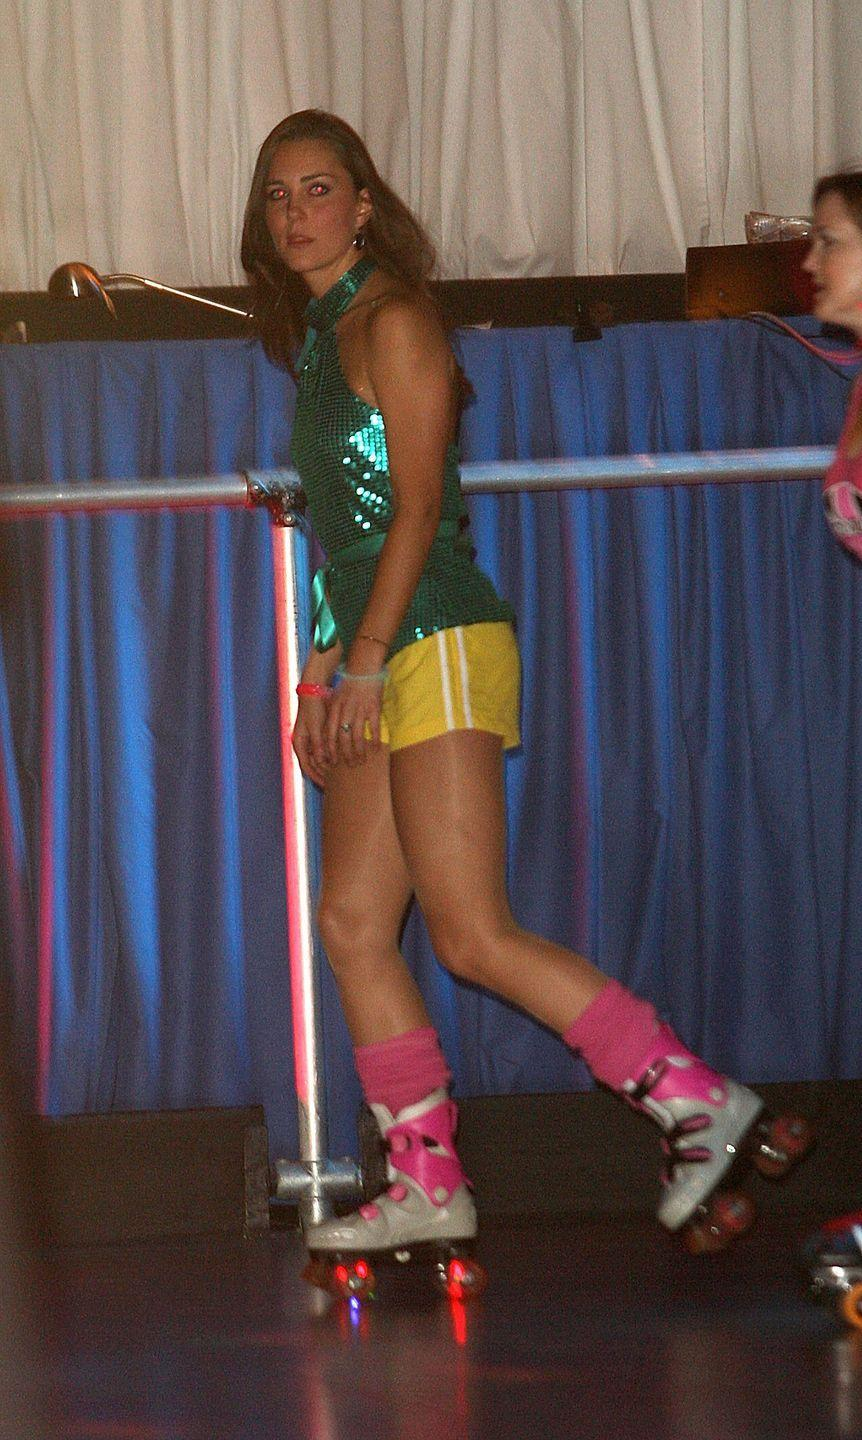 <p>In her pre-royal life, Kate channeled the 1980s in a wild, roller-skating outfit. For this funky look, she chose a green sequined top, yellow shorts, and hot pink leg warmers. </p>